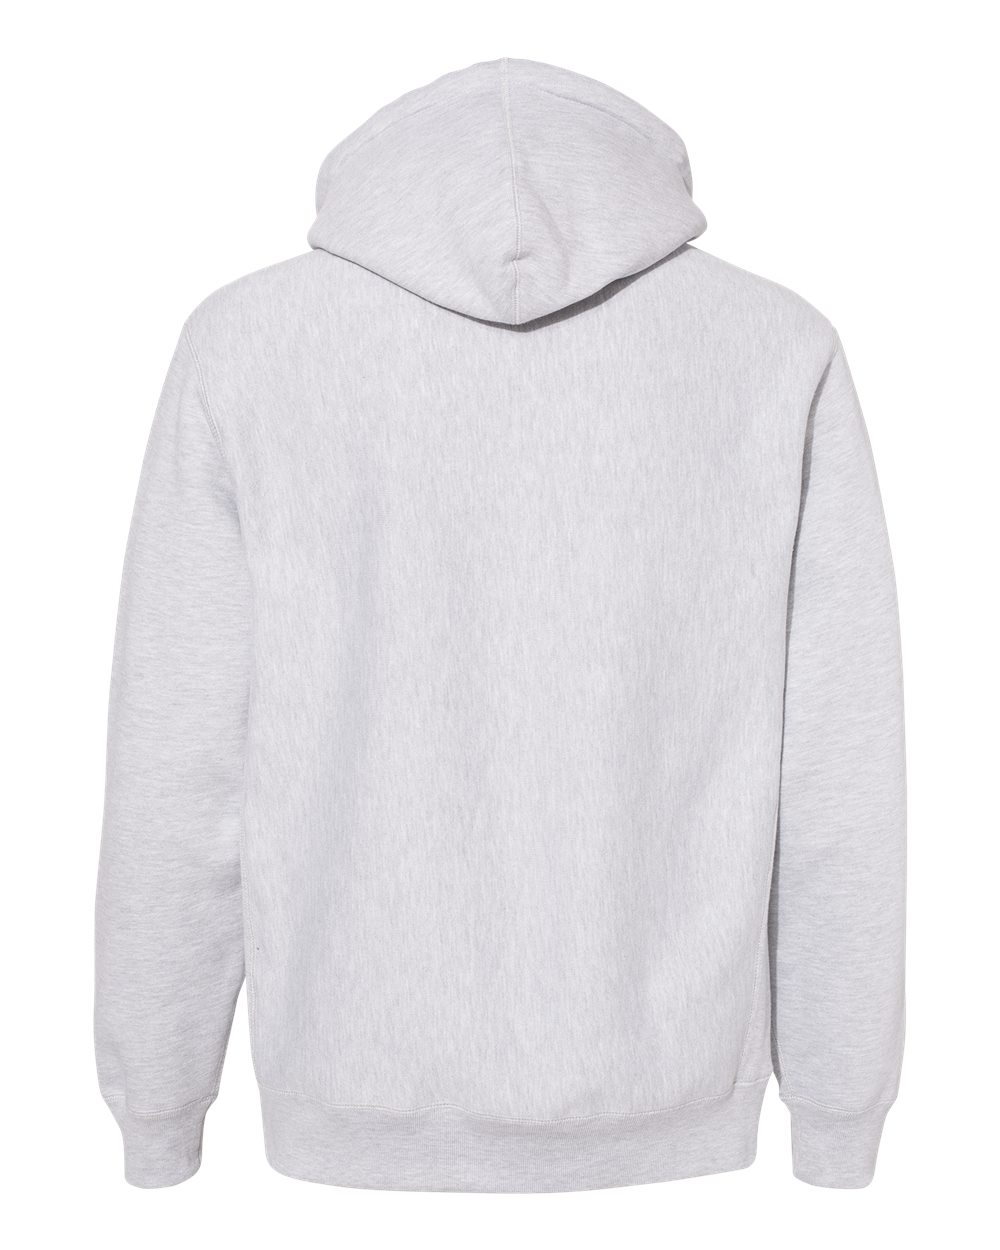 Independent-Trading-Co-Mens-Premium-Heavyweight-Cross-Grain-Hoodie-IND5000P thumbnail 22